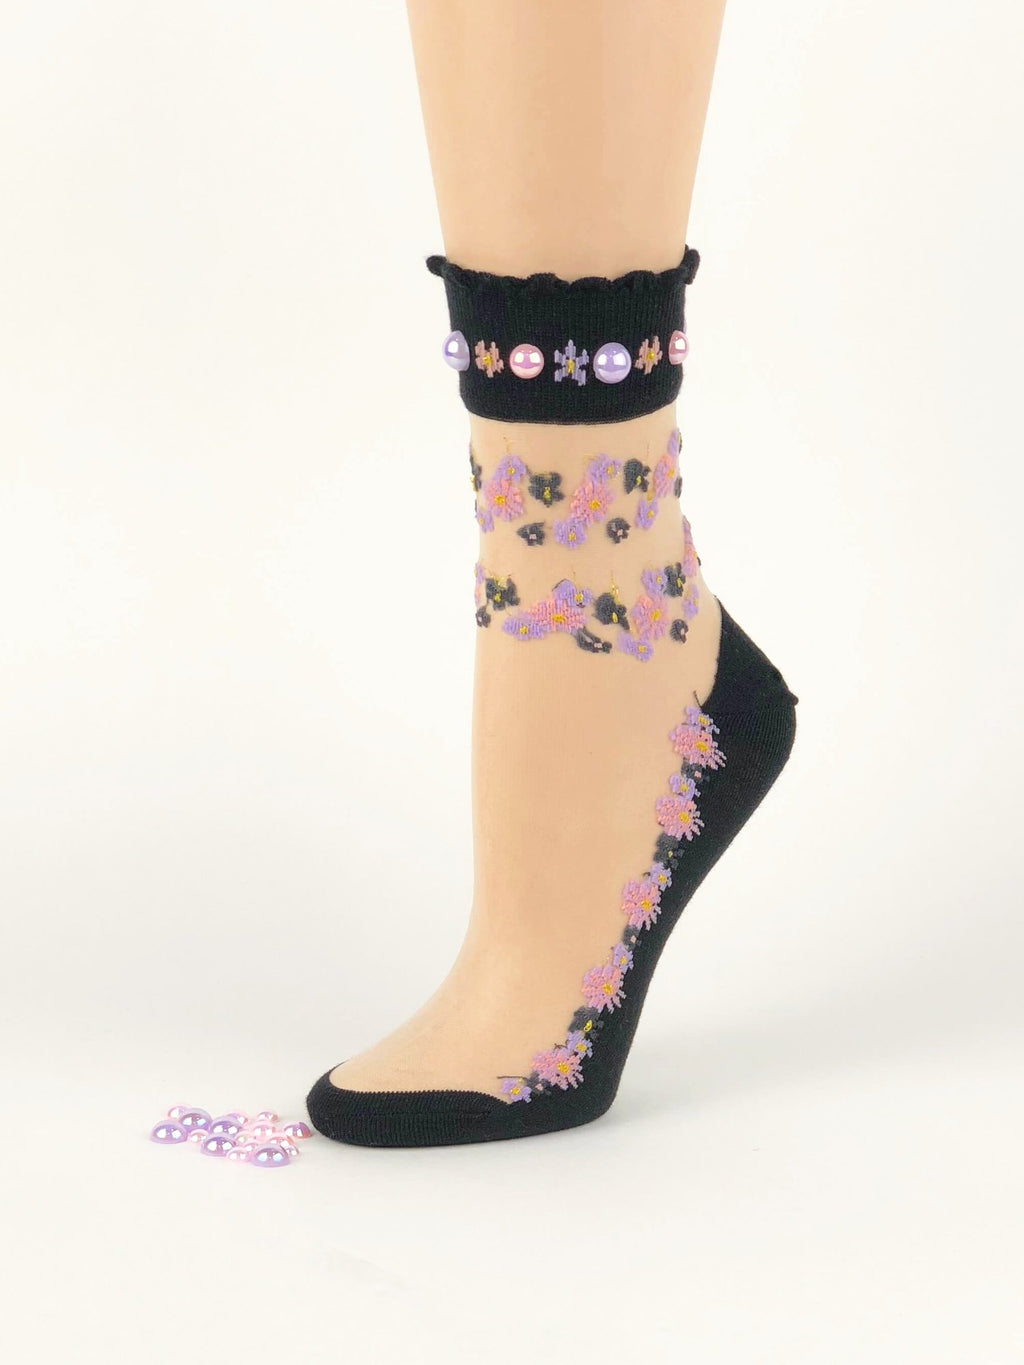 Stylish Pink/Purple Flower Sheer Socks - Global Trendz Fashion®